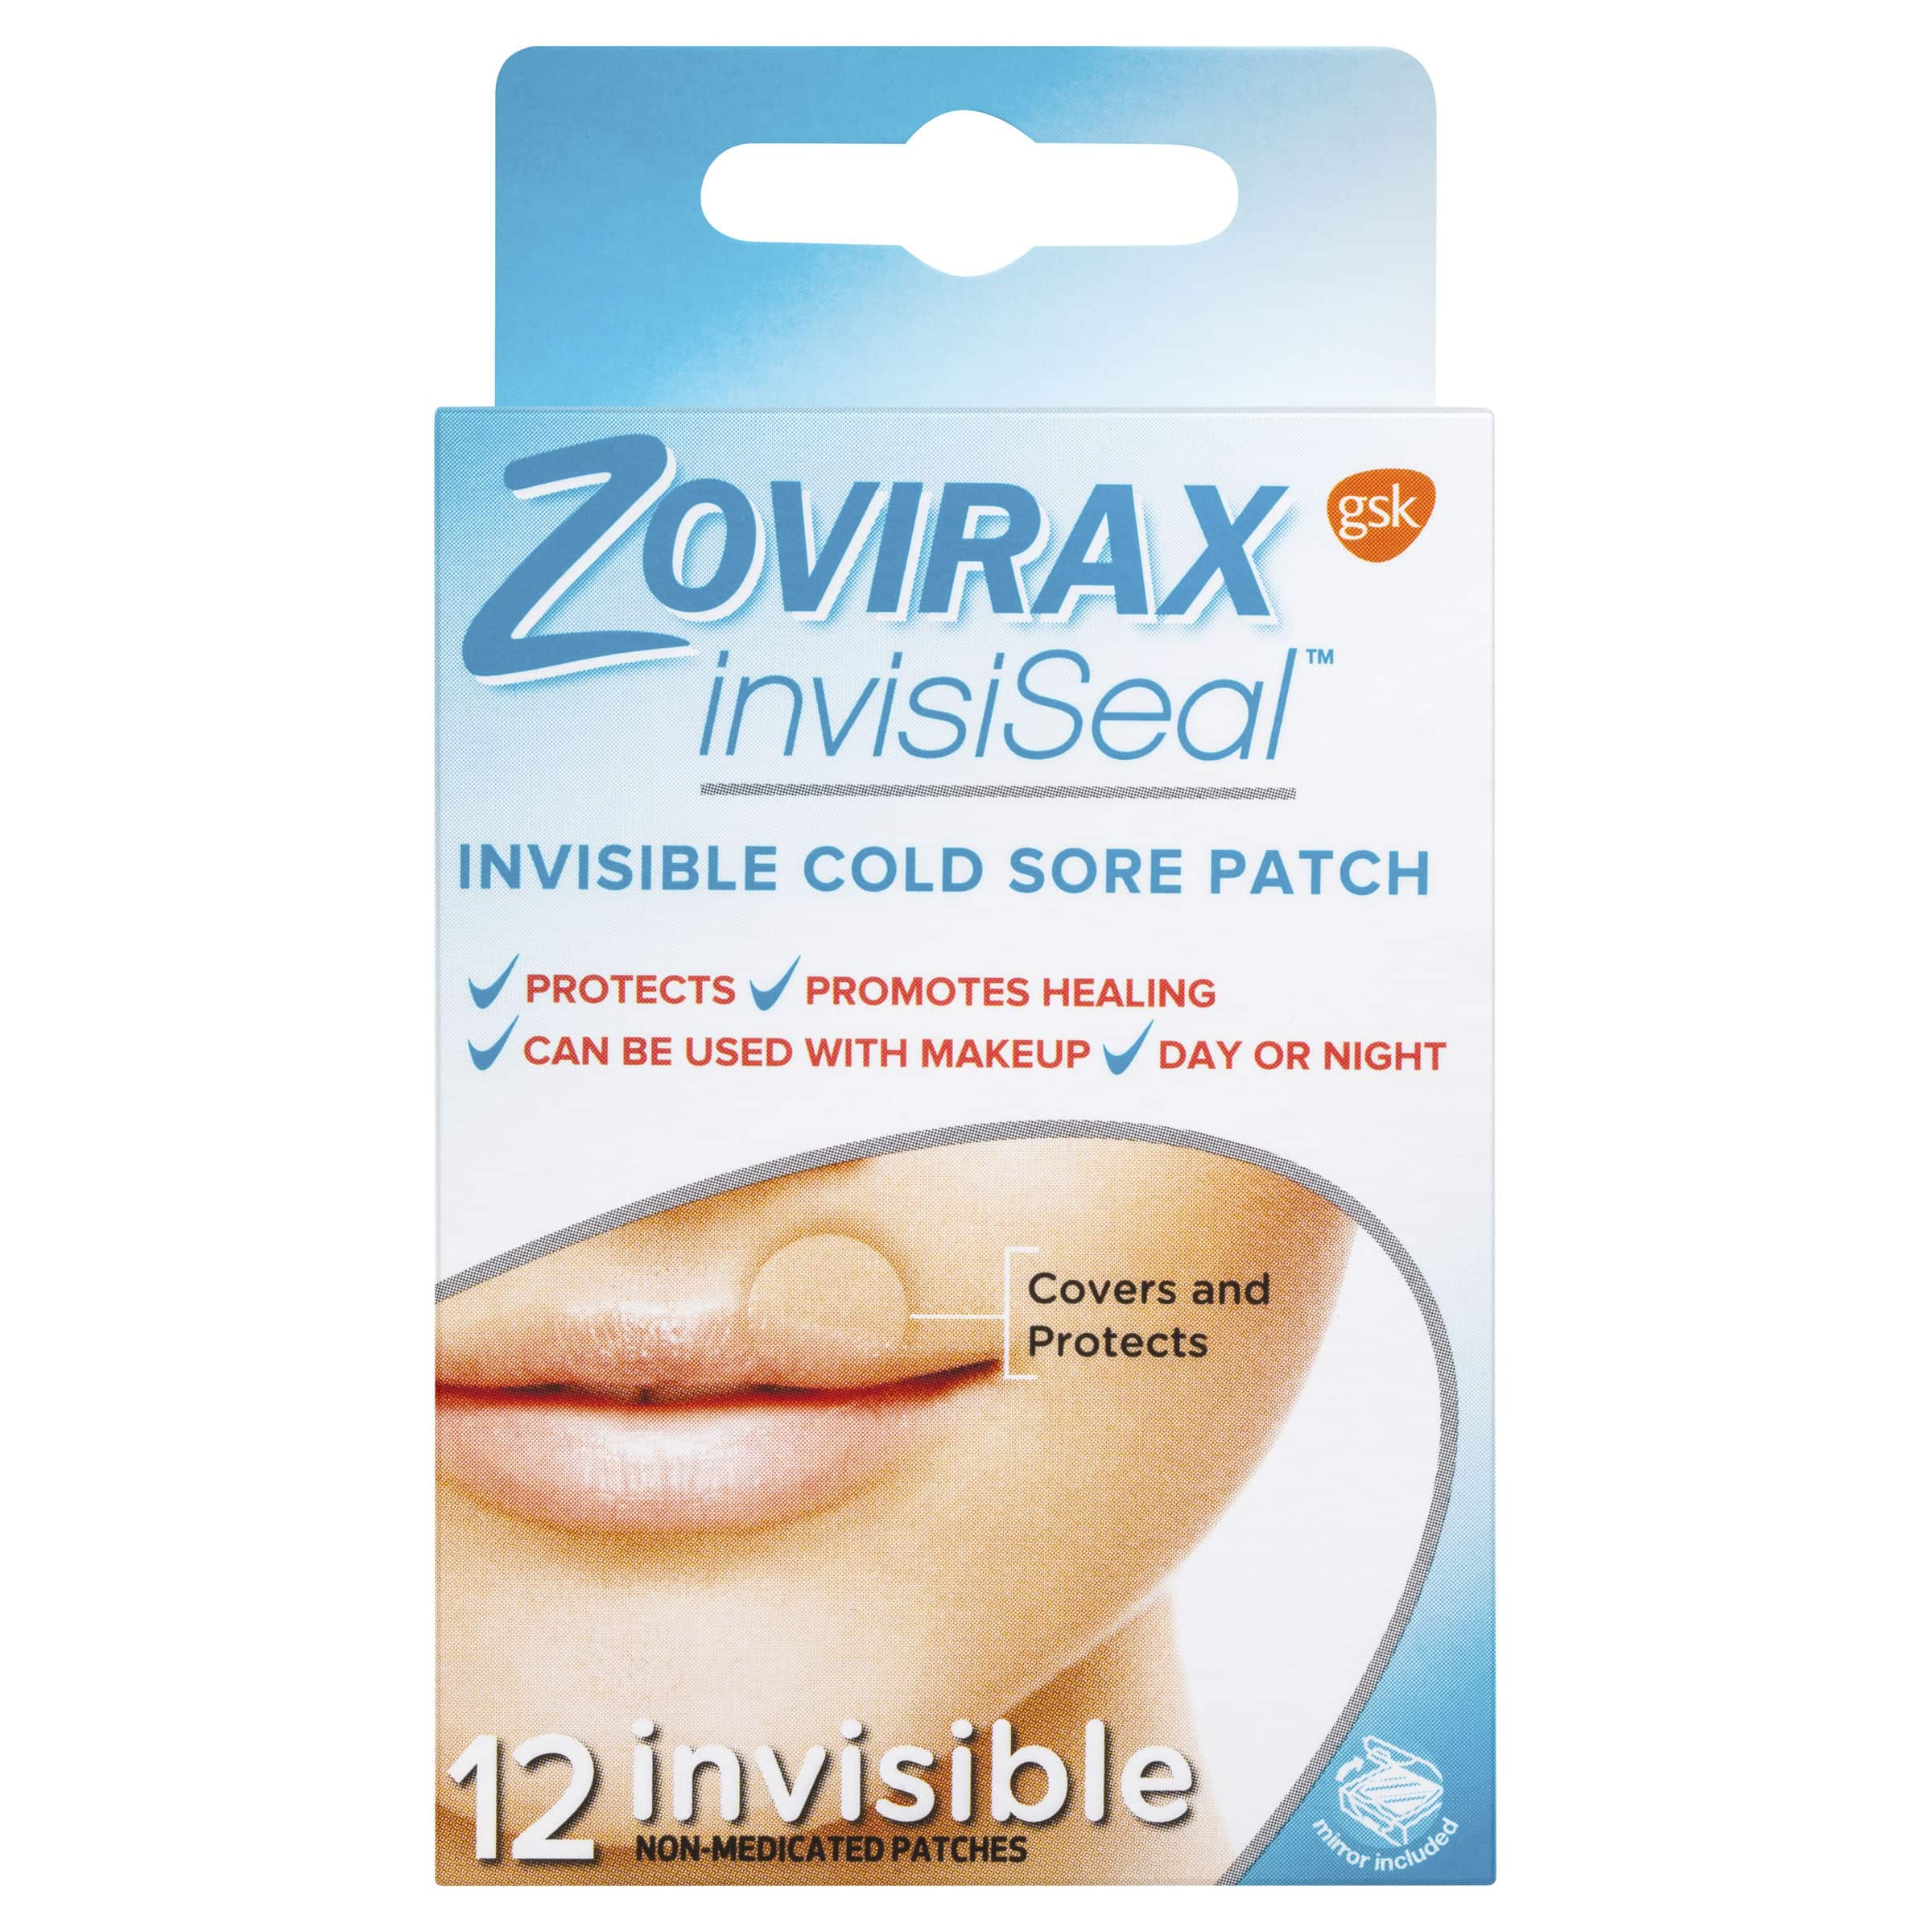 Zovirax InvisiSeal Invisible Cold Sore Patches 12 Pack